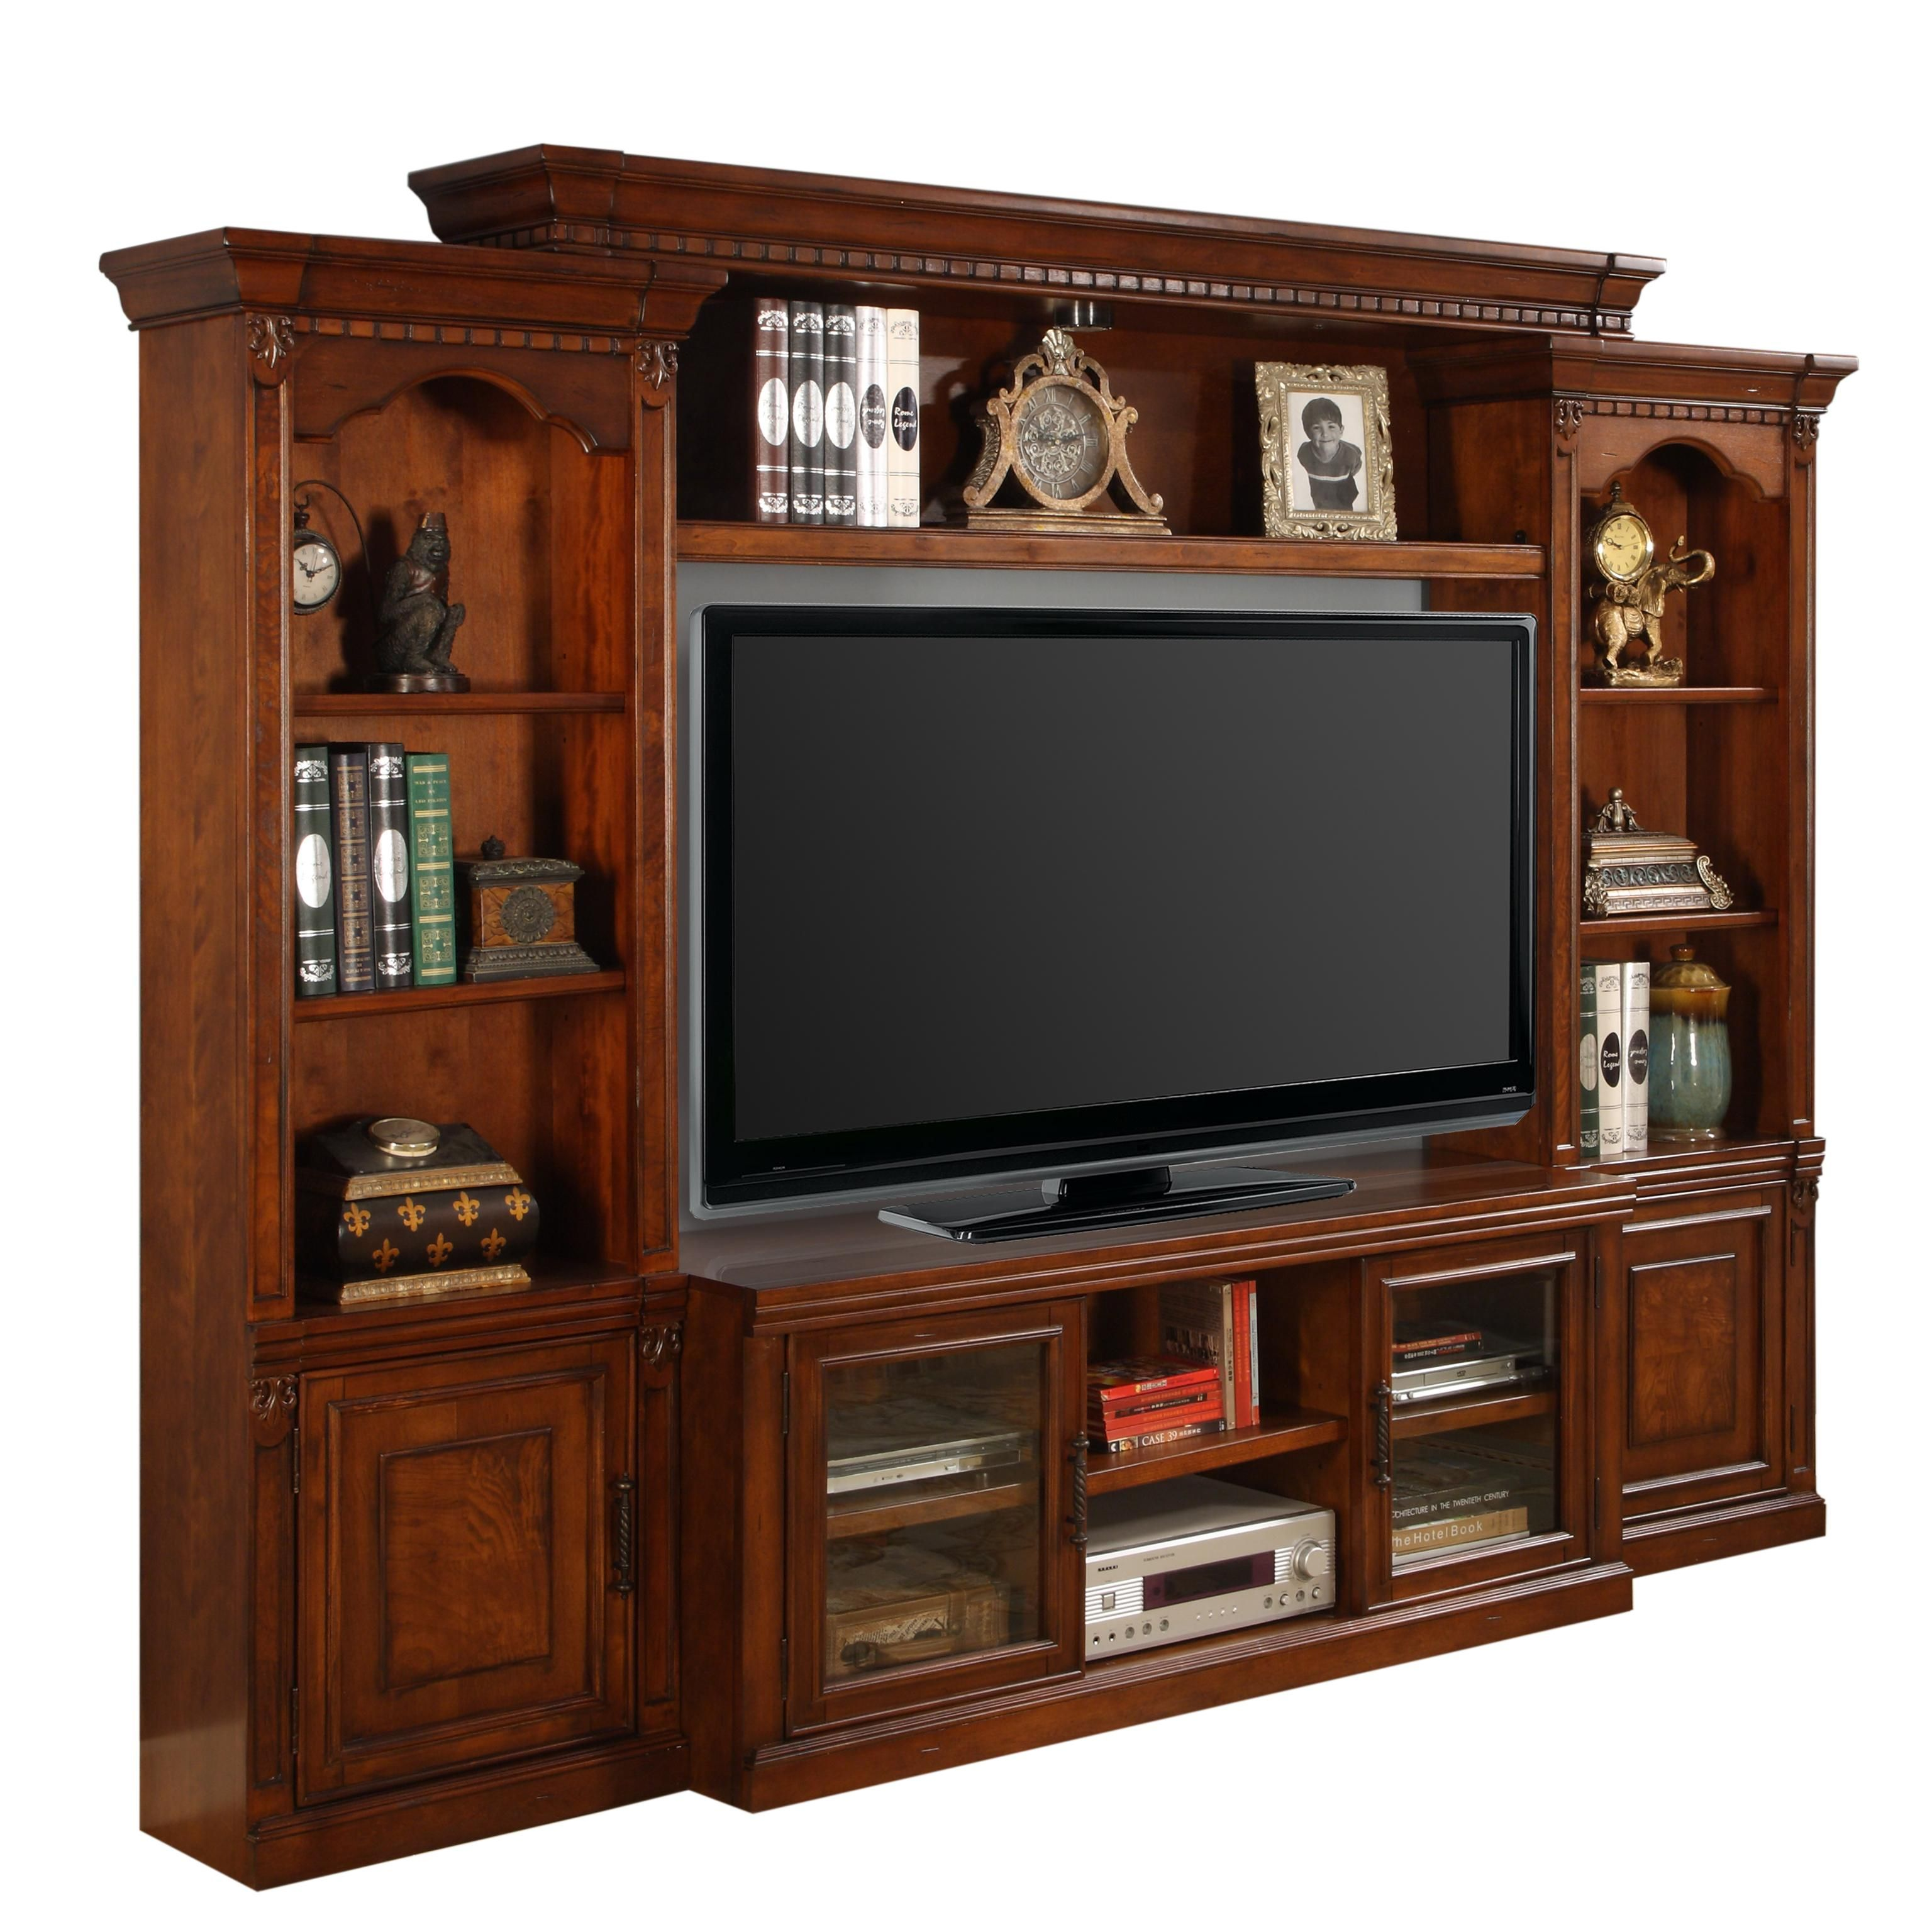 Living Room Furniture Northern Va: Premier Athens Premier Stationary Wall By Parker House At